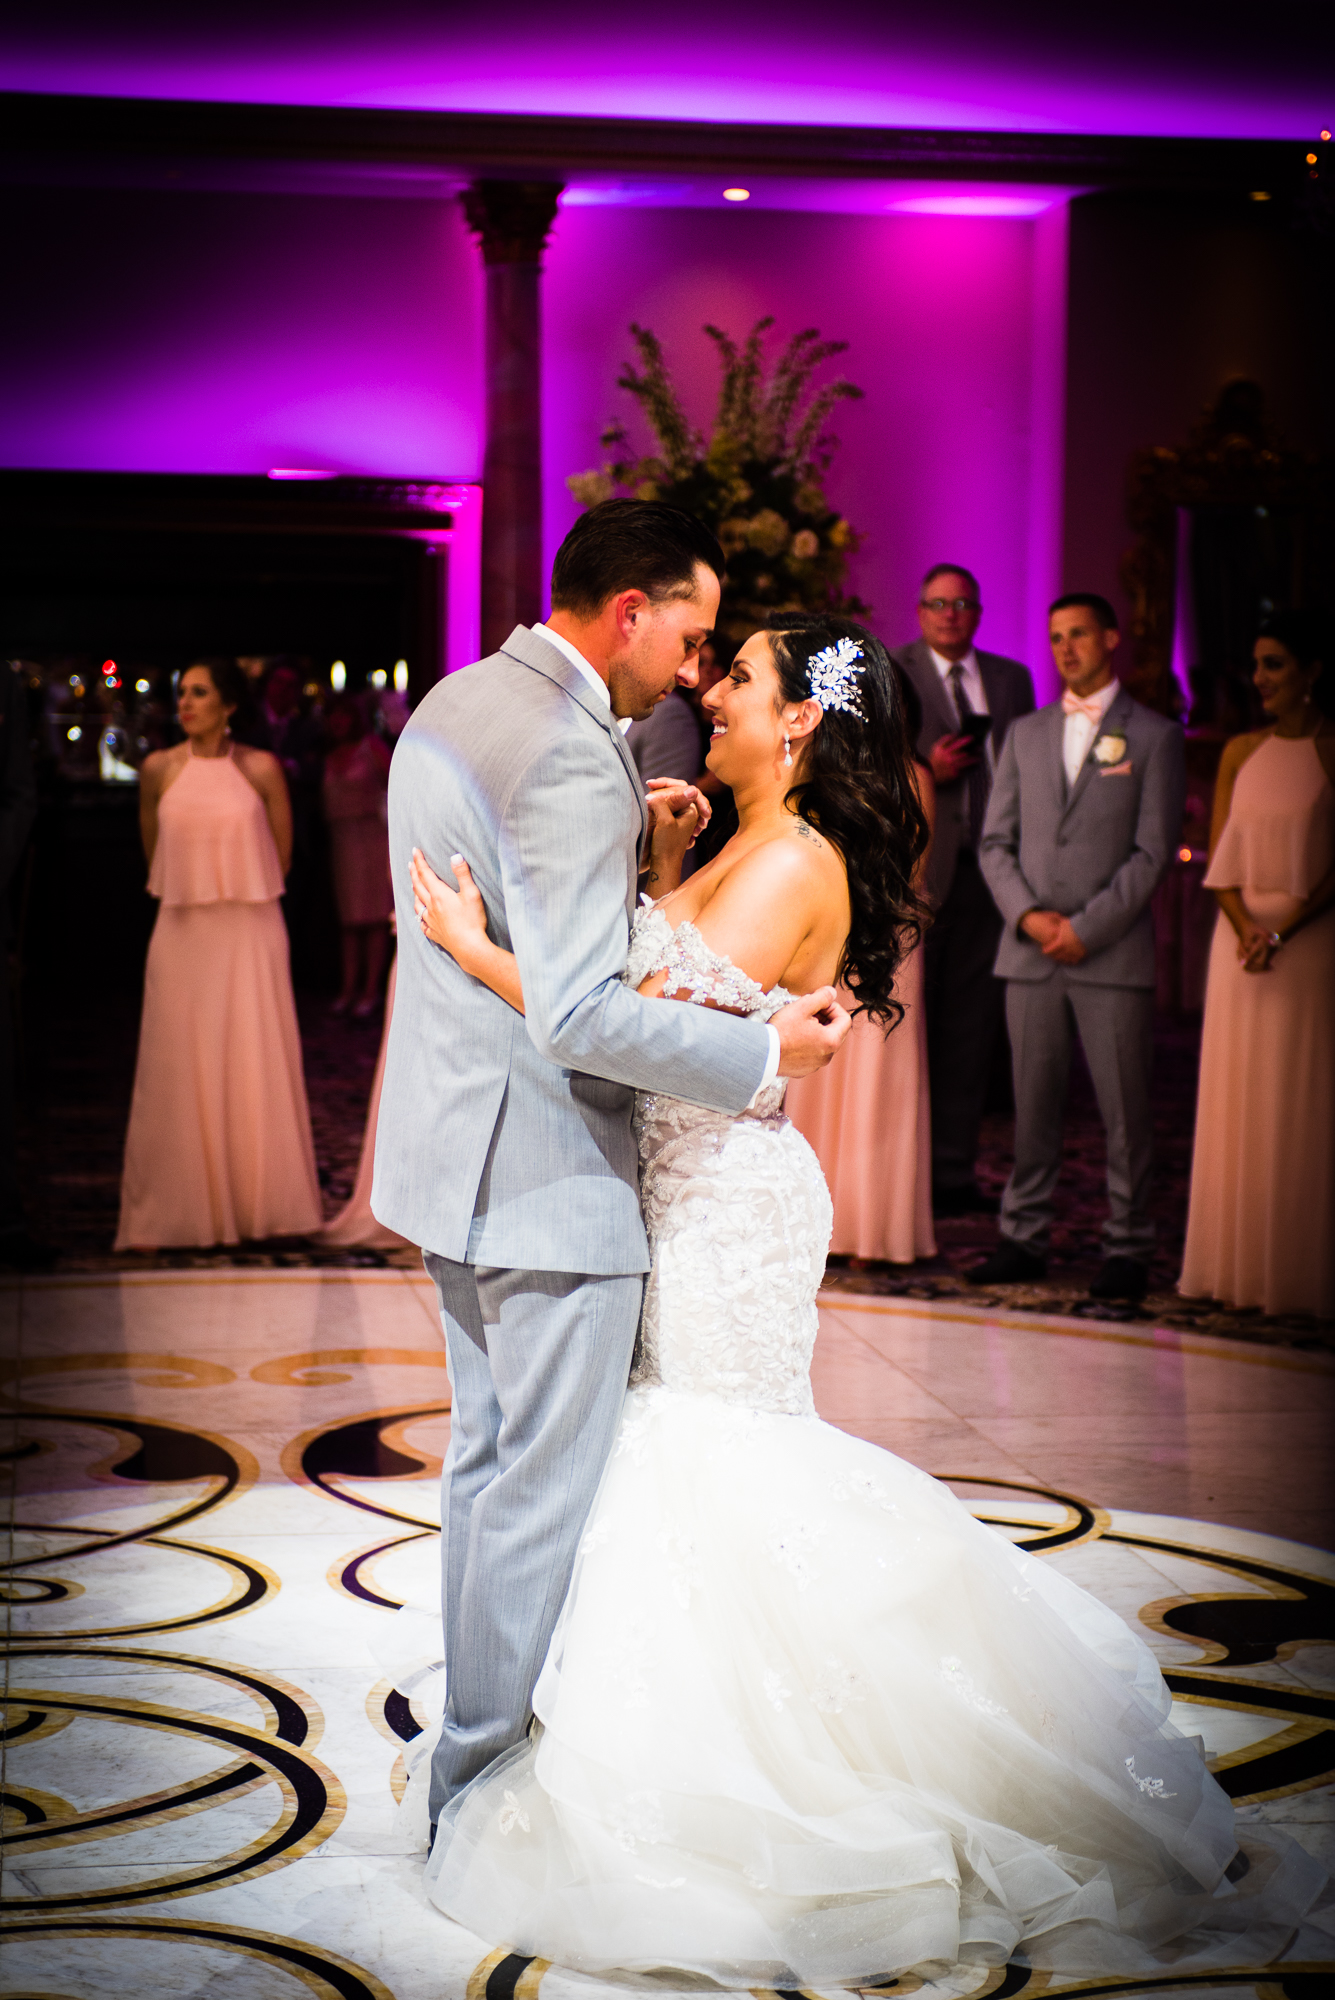 LUCIENS MANOR WEDDING - BERLIN NJ -098.jpg